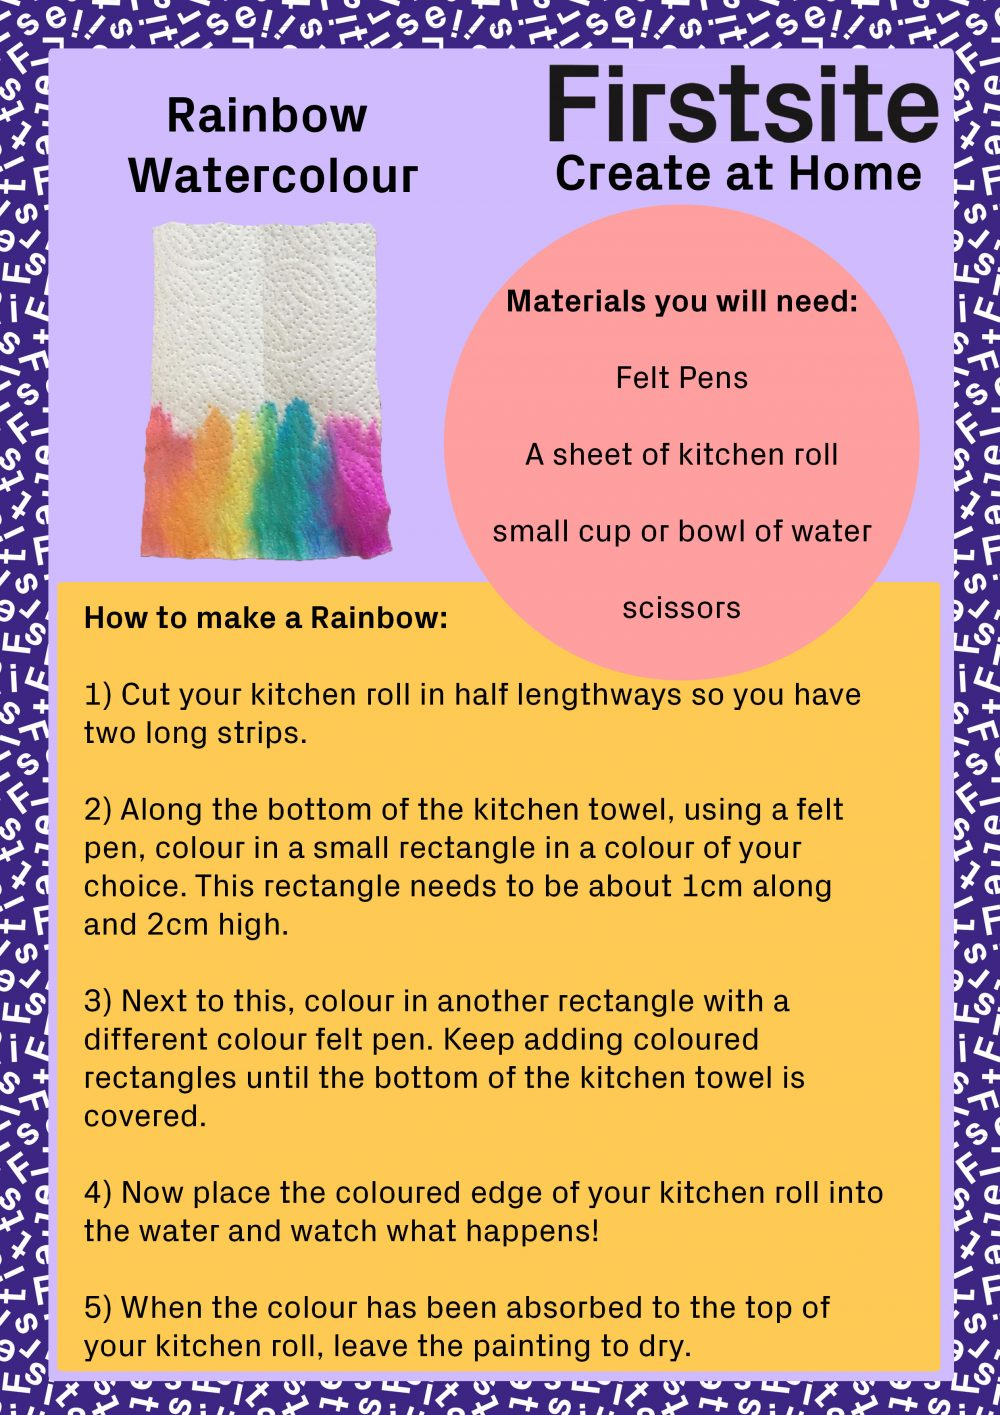 Firstsite Create at Home activity - Rainbow Watercolour Instructions